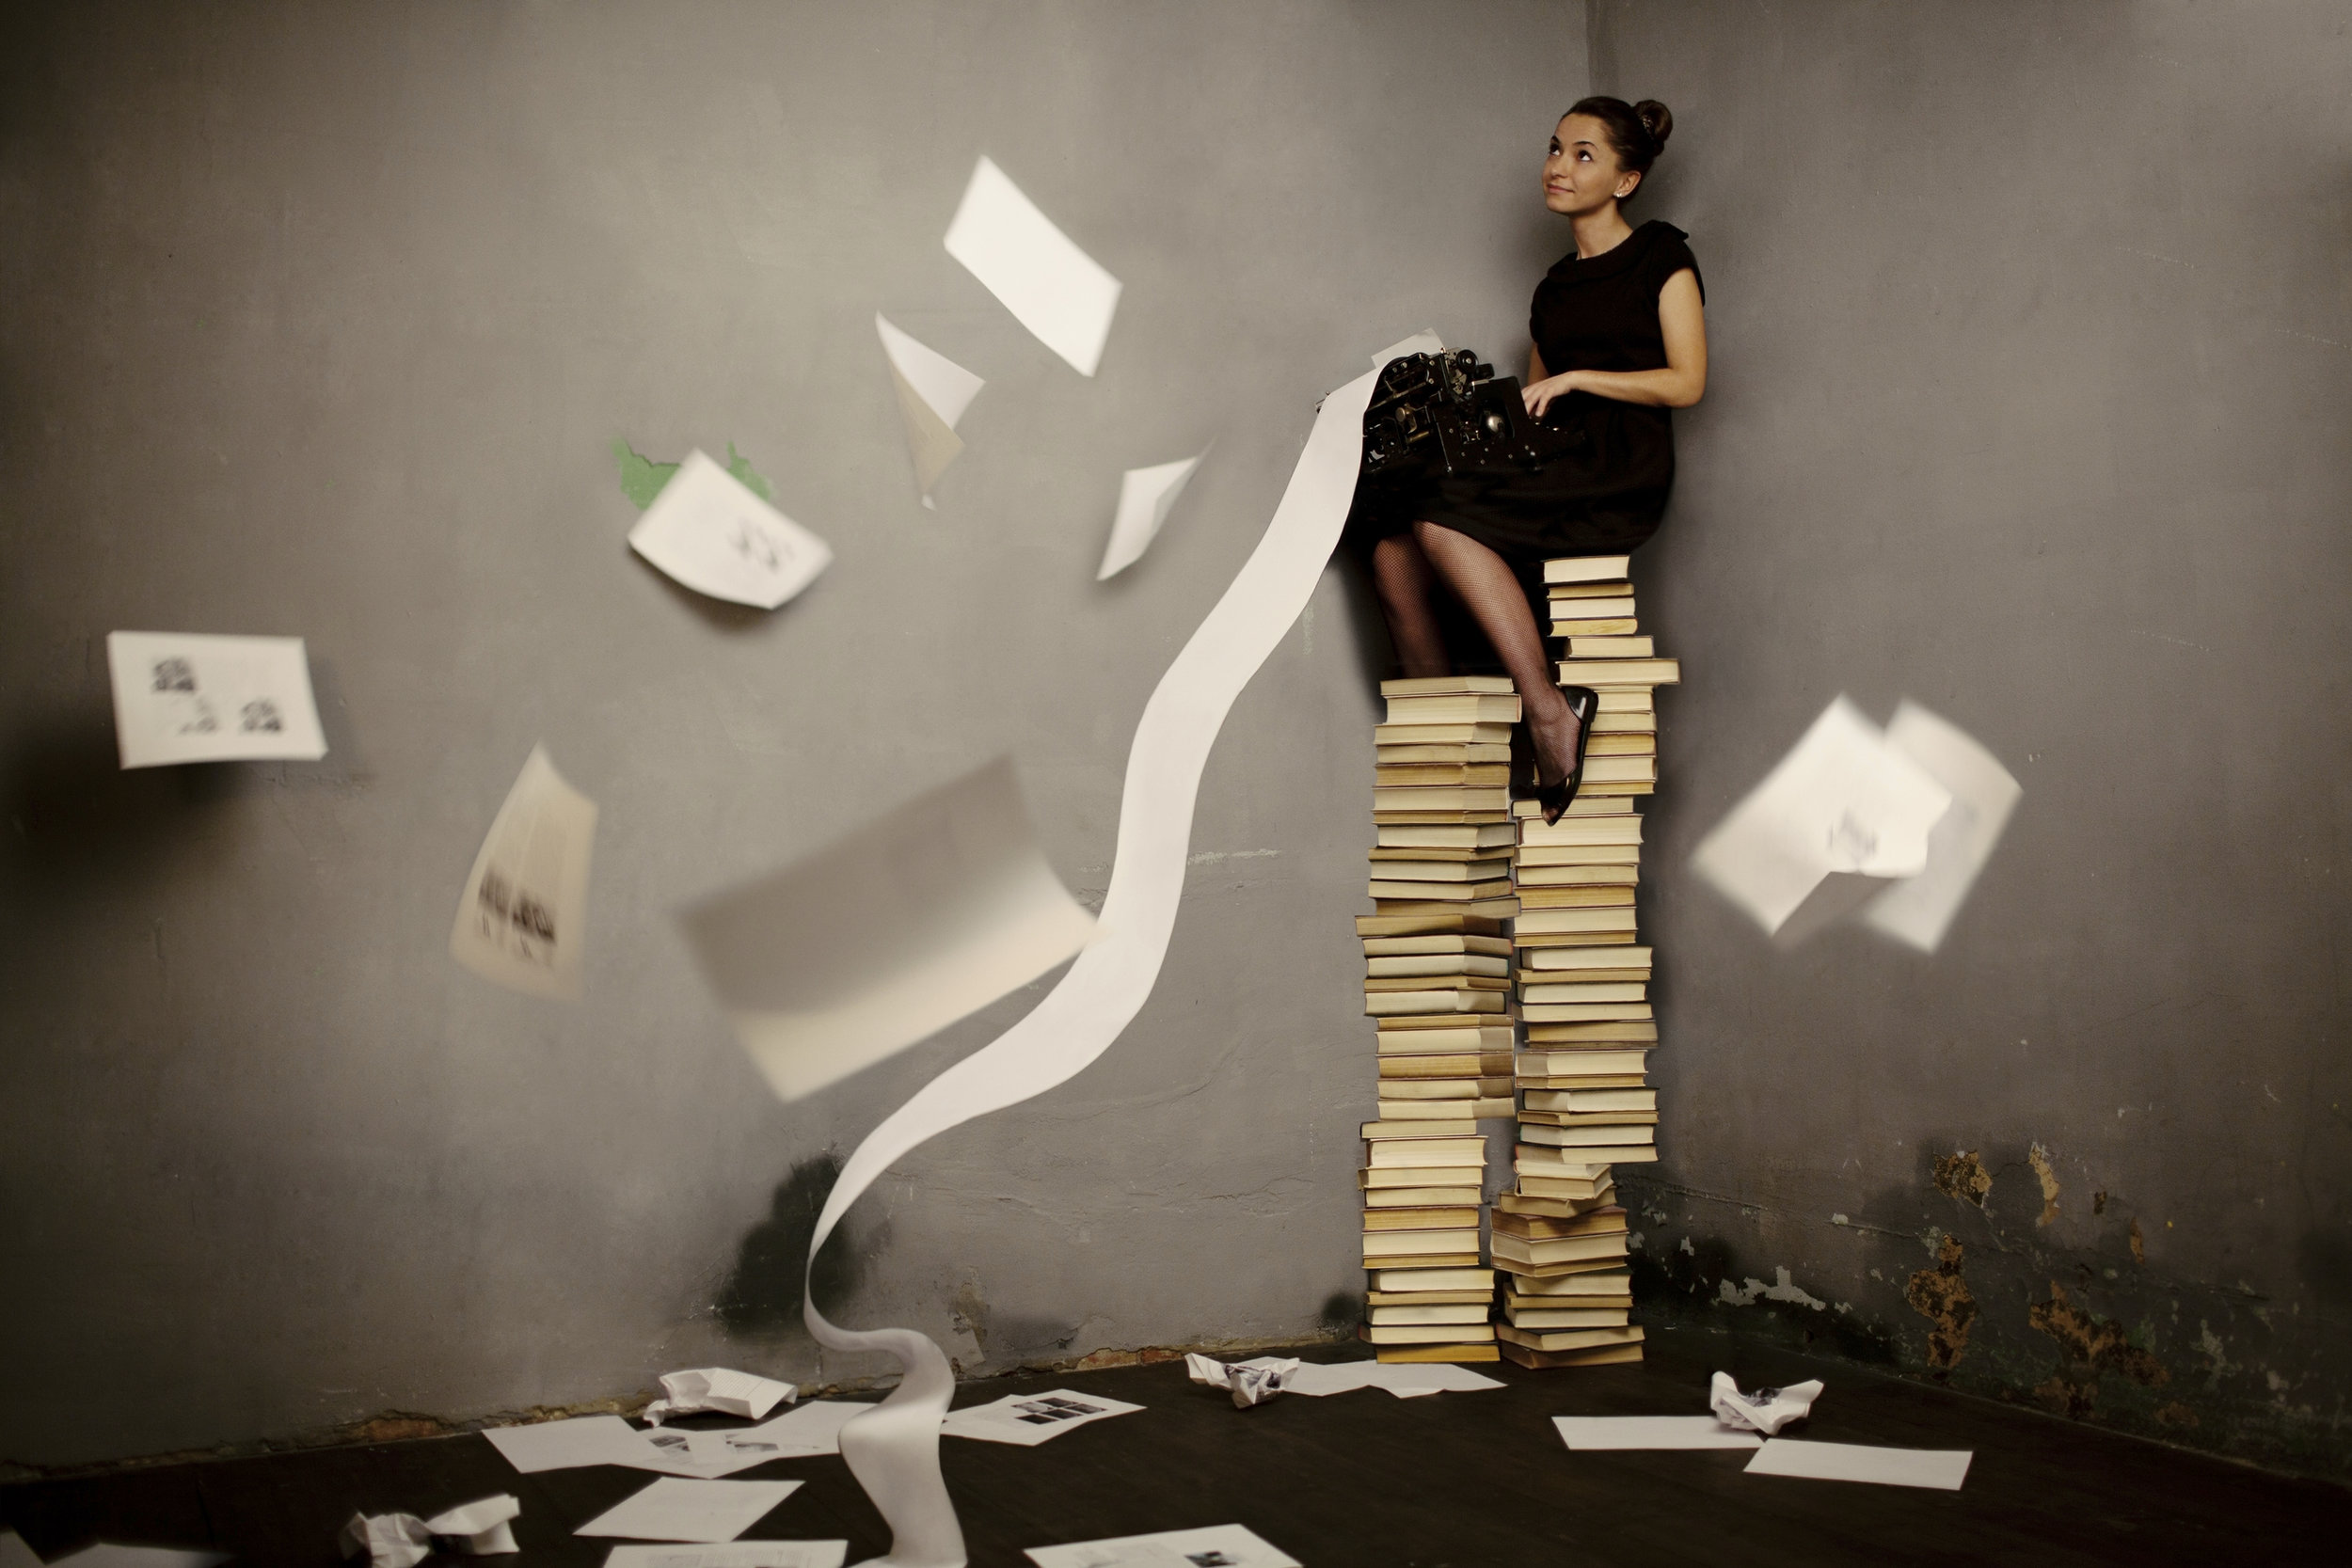 woman on a pile of books, overwhelmed by information, typing manically